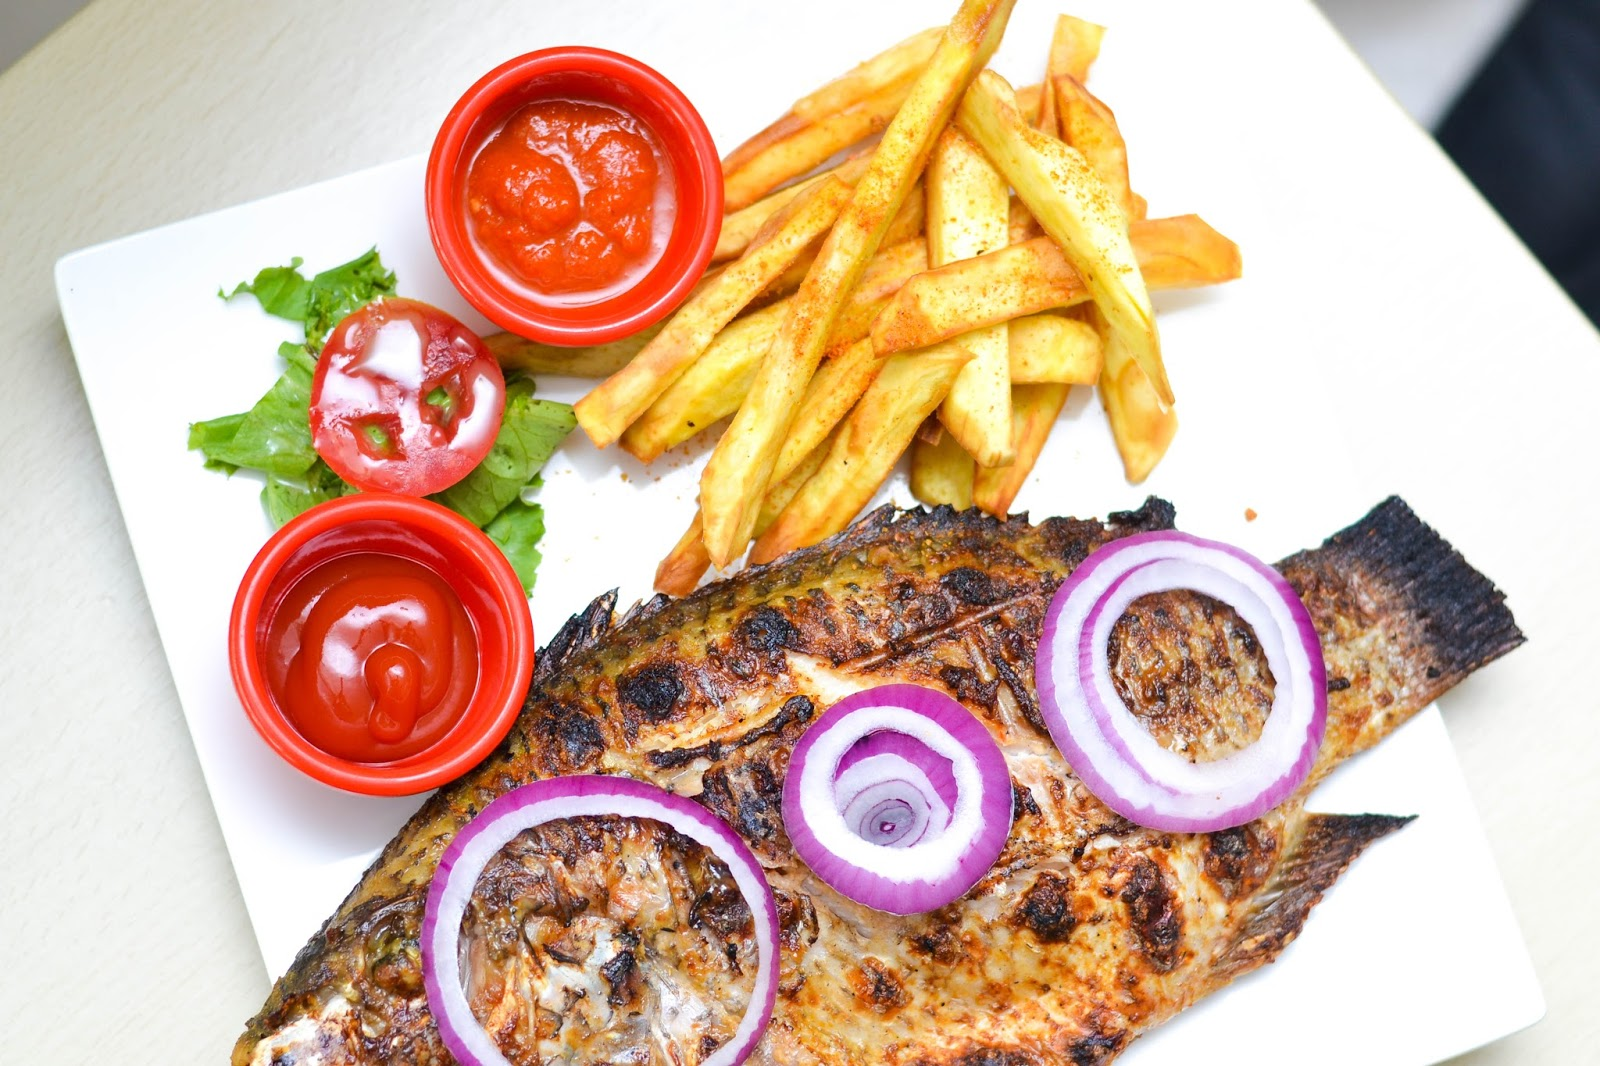 Sweet Potato Fries with Sliced Tomato, Lettuce, Ketchup and Grilled Fish